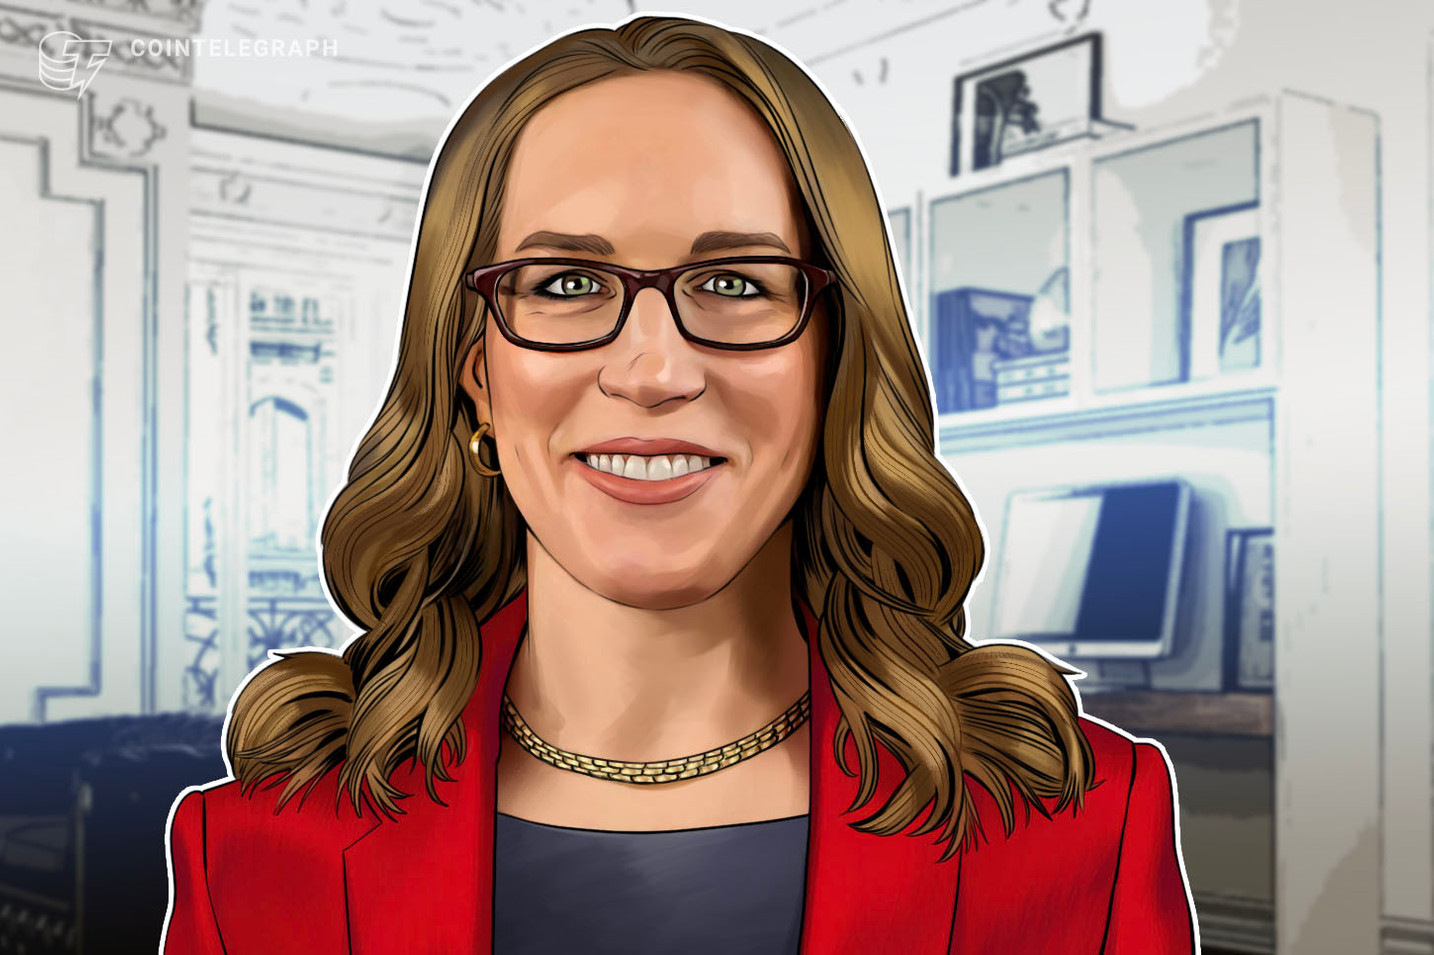 Institutional adoption underscores urgency of clear crypto rules, says Hester Peirce